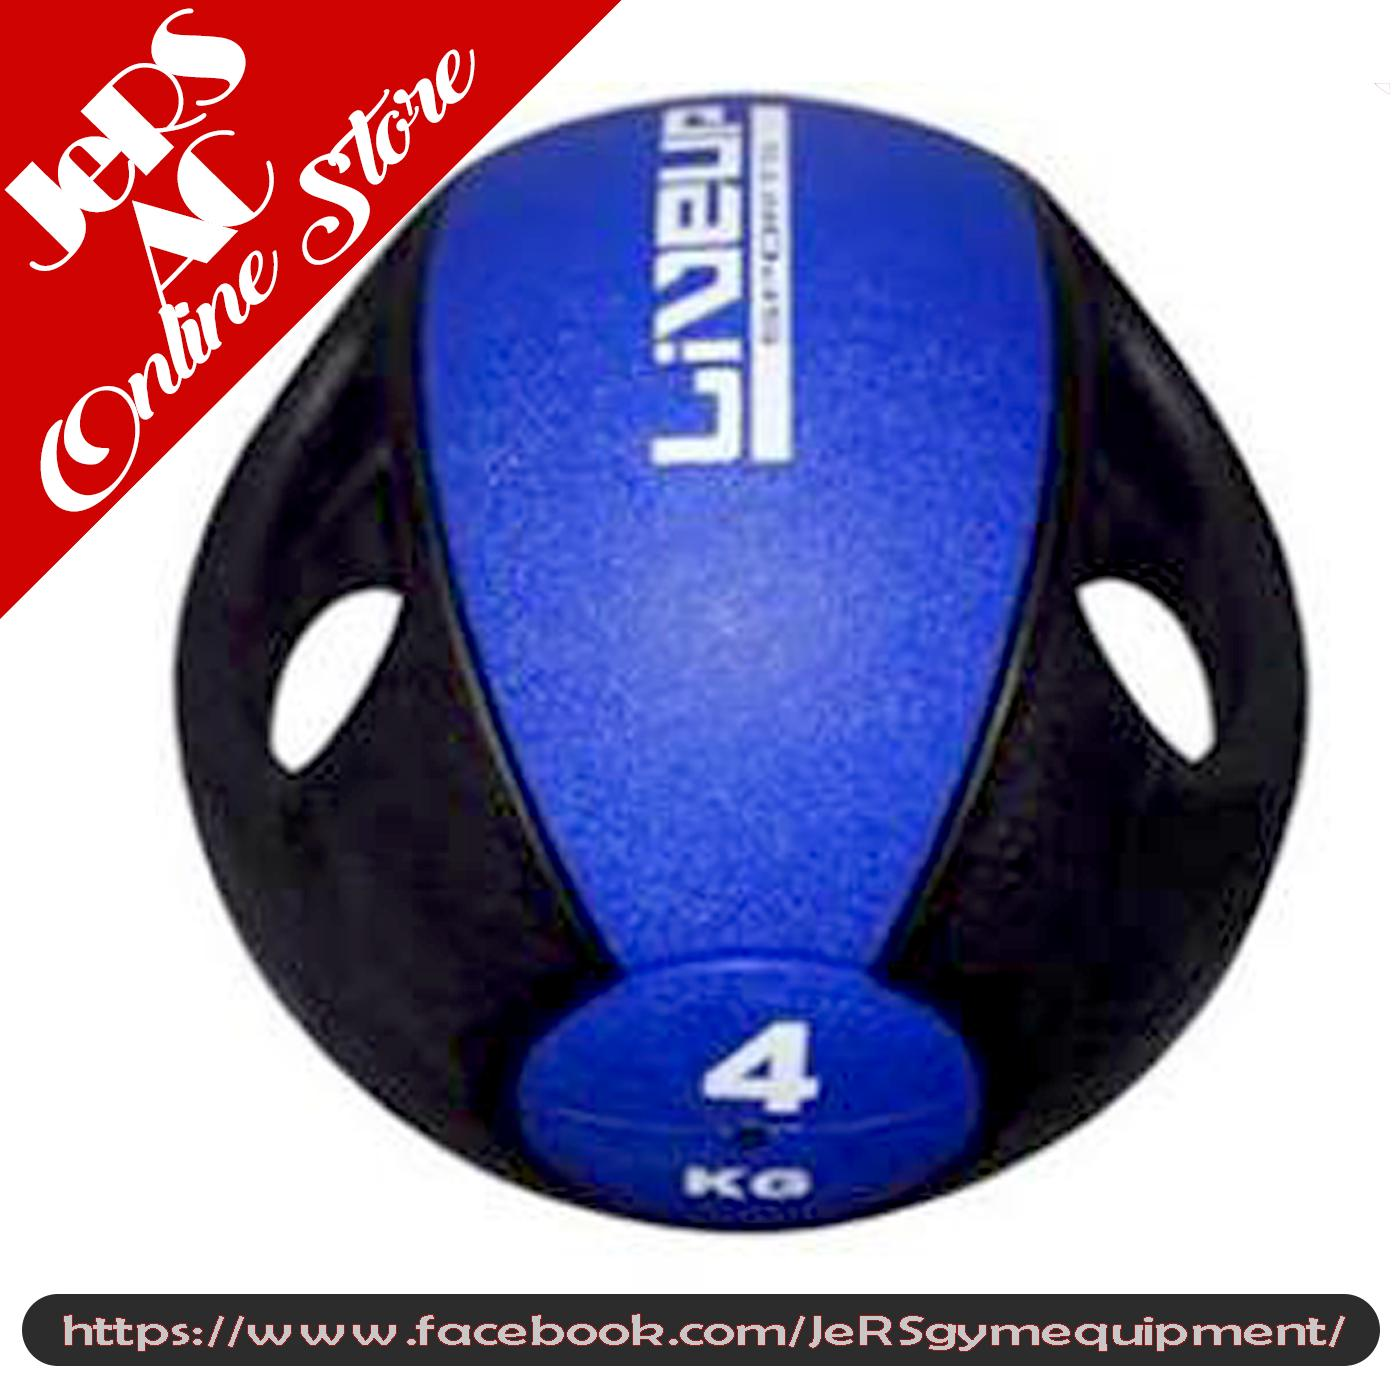 Buy Sell Cheapest 4kg Live Up Best Quality Product Deals Rawt 11154 Reebok Dumbbell Per Pair Sport Medicine Ball With Handle Blue